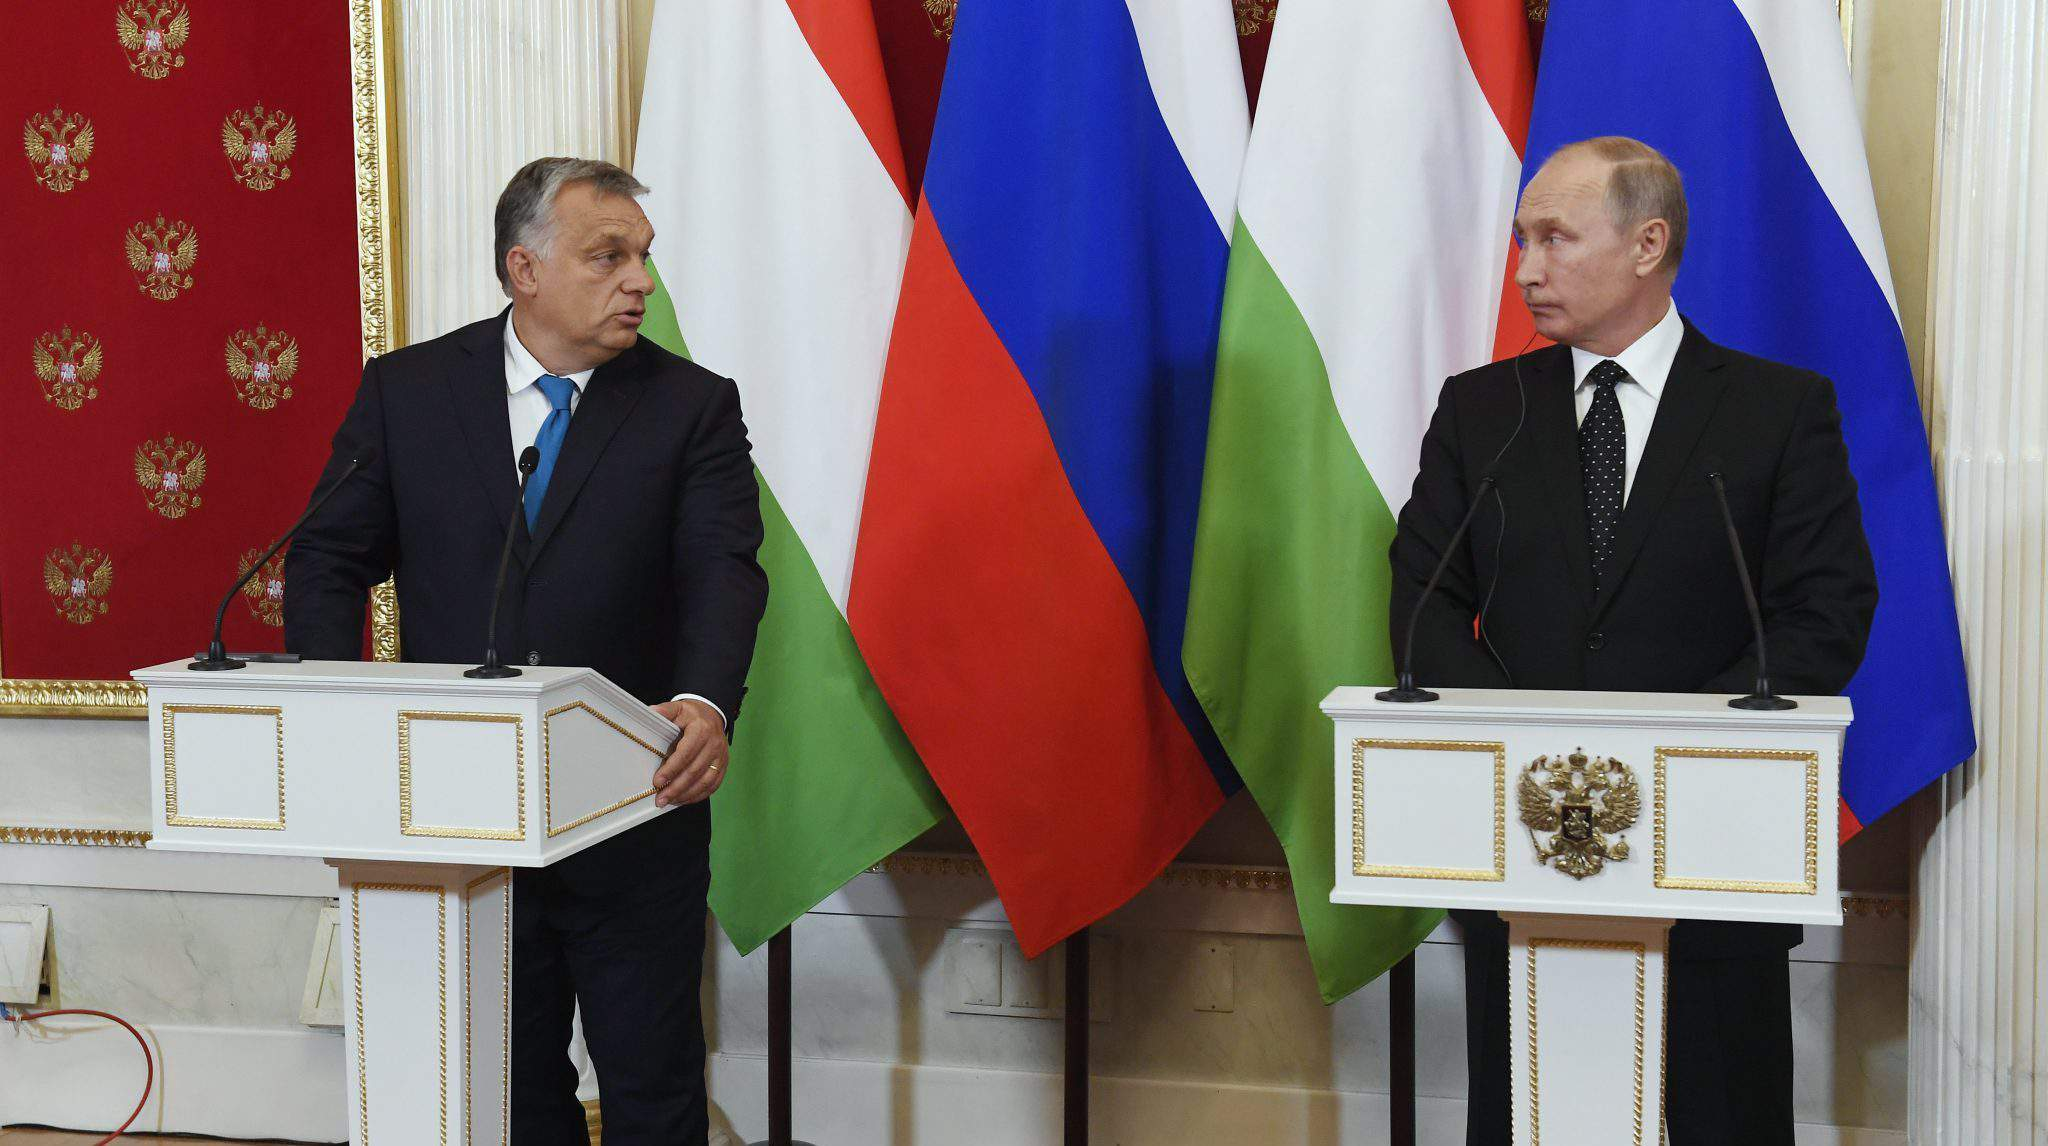 Orbán in Russia with Putin